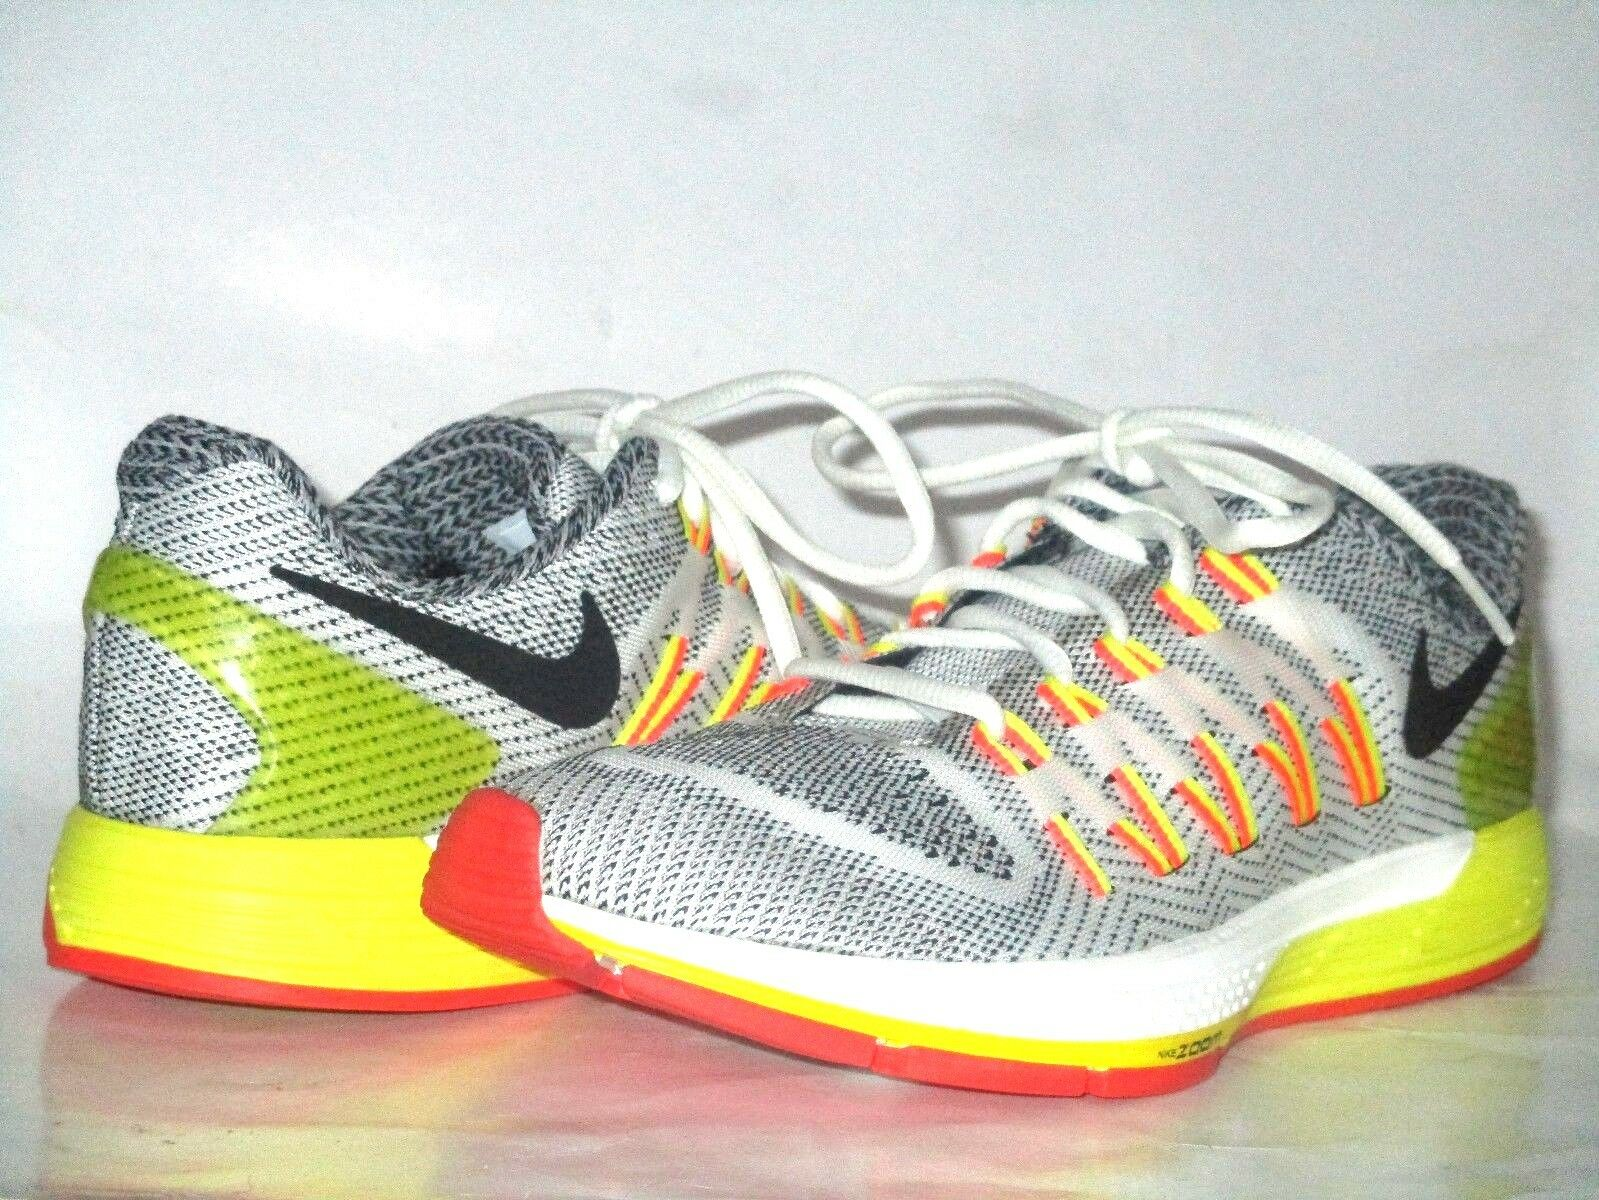 Men's shoes Nike Air Zoom Odyssey Black White orange Yellow 749338-101 Size 7.5 M